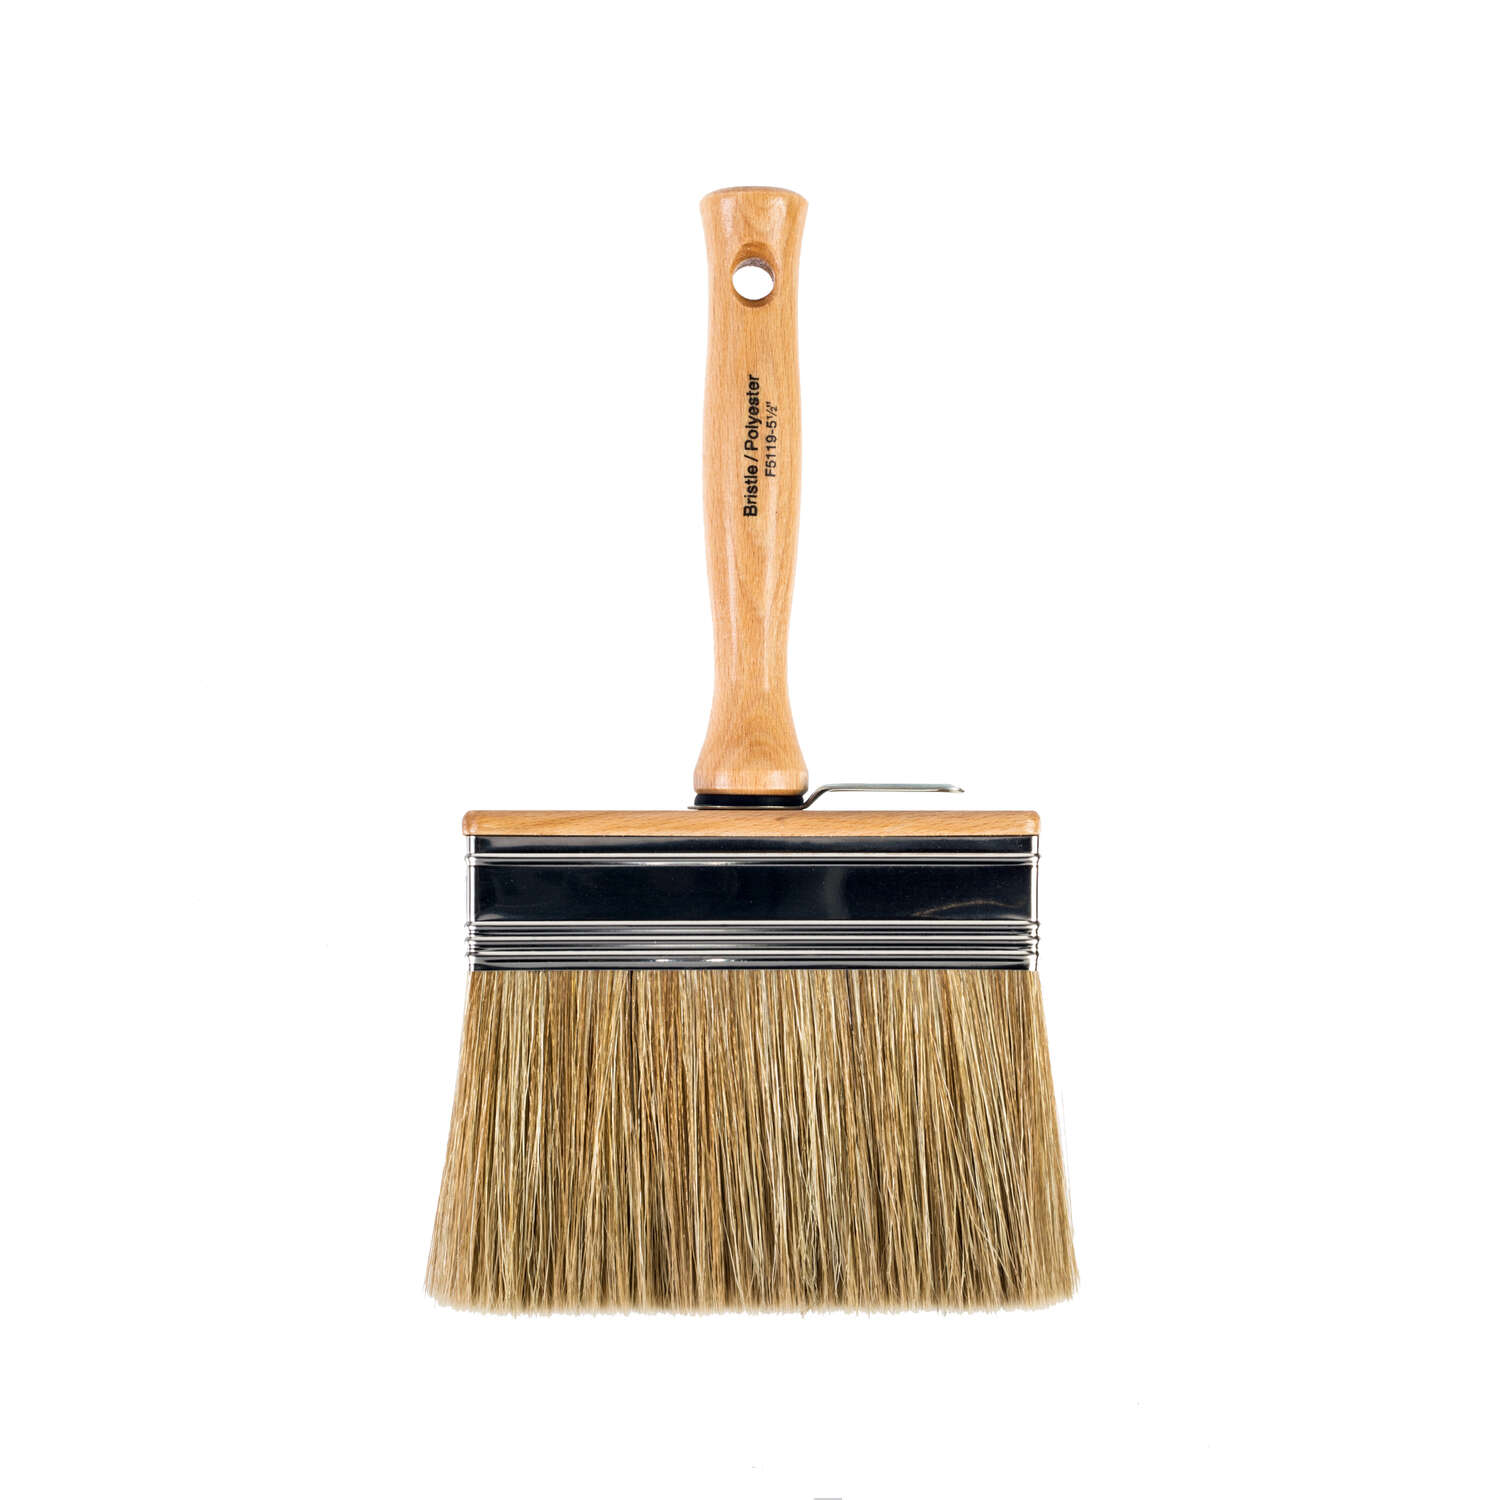 Wooster  5 1/2 in. W Flat  Polyester and White China Bristle  Paint Brush  Bravo Stainer